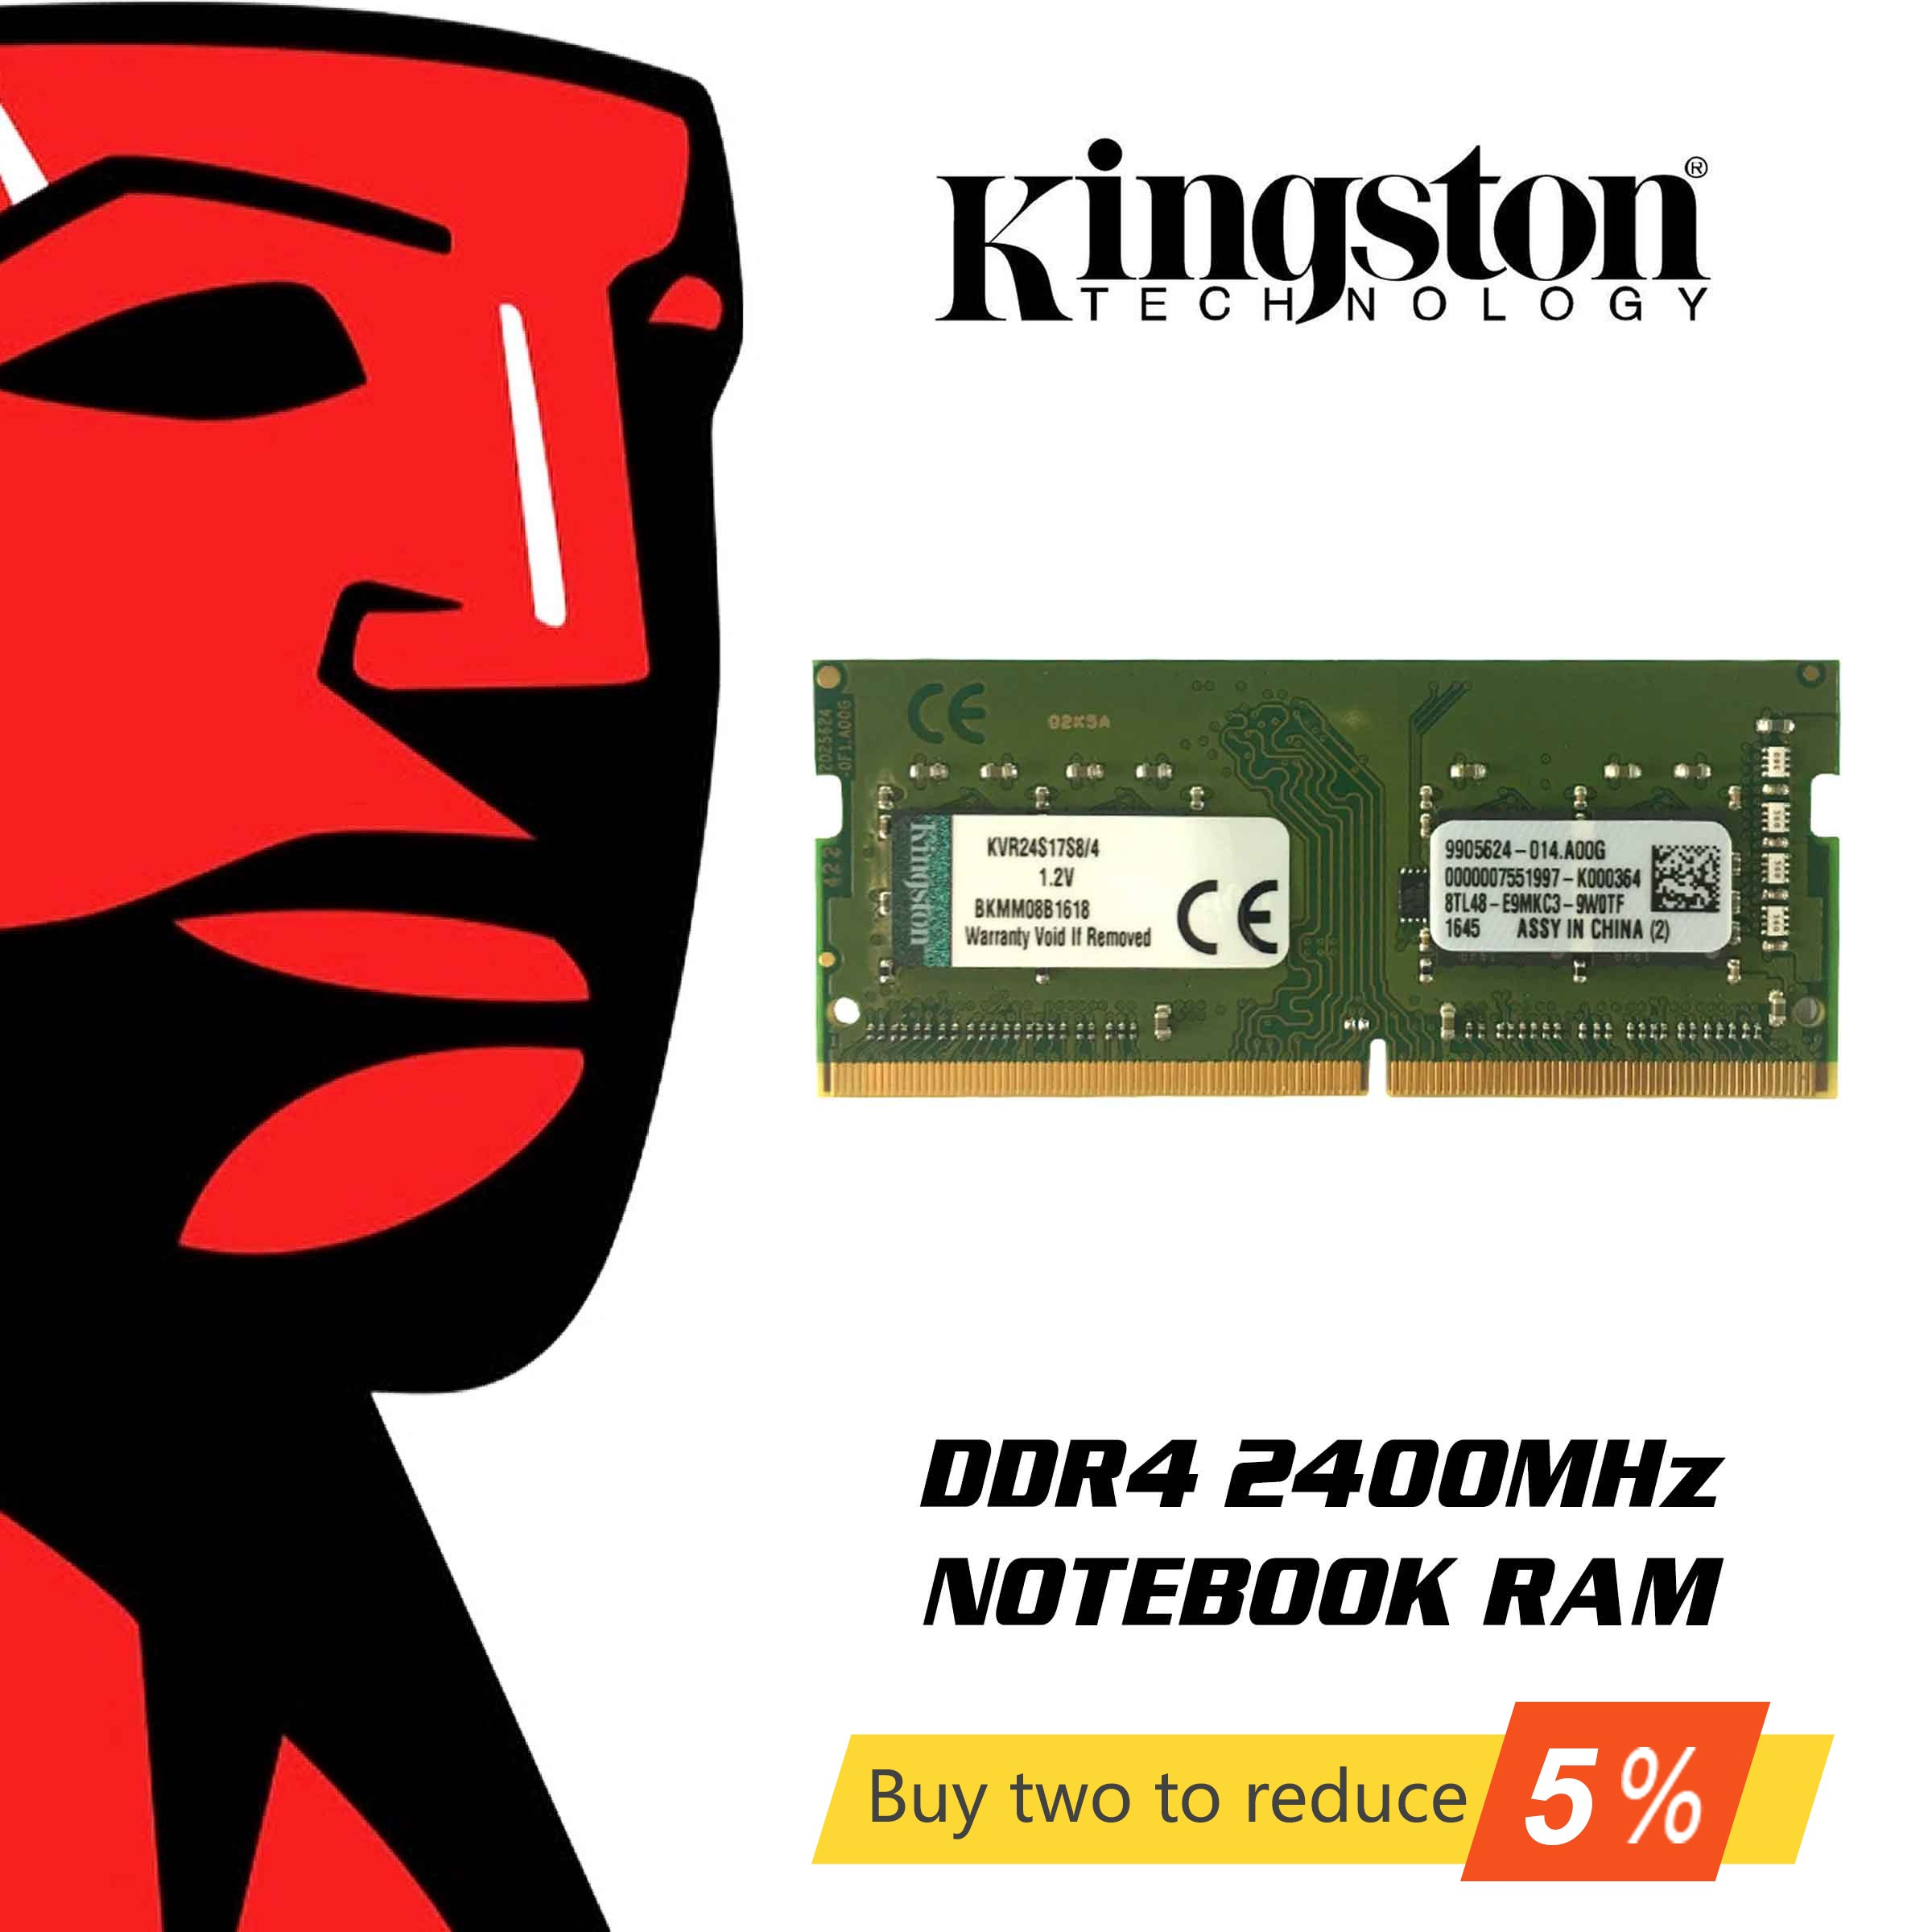 Original Kingston RAM Memory <font><b>DDR4</b></font> 8GB 4GB <font><b>16GB</b></font> 2400Mhz <font><b>Notebook</b></font> Memory Sodimm Internal <font><b>Memoria</b></font> For Laptop PC 8 Gigabytes Gigs image